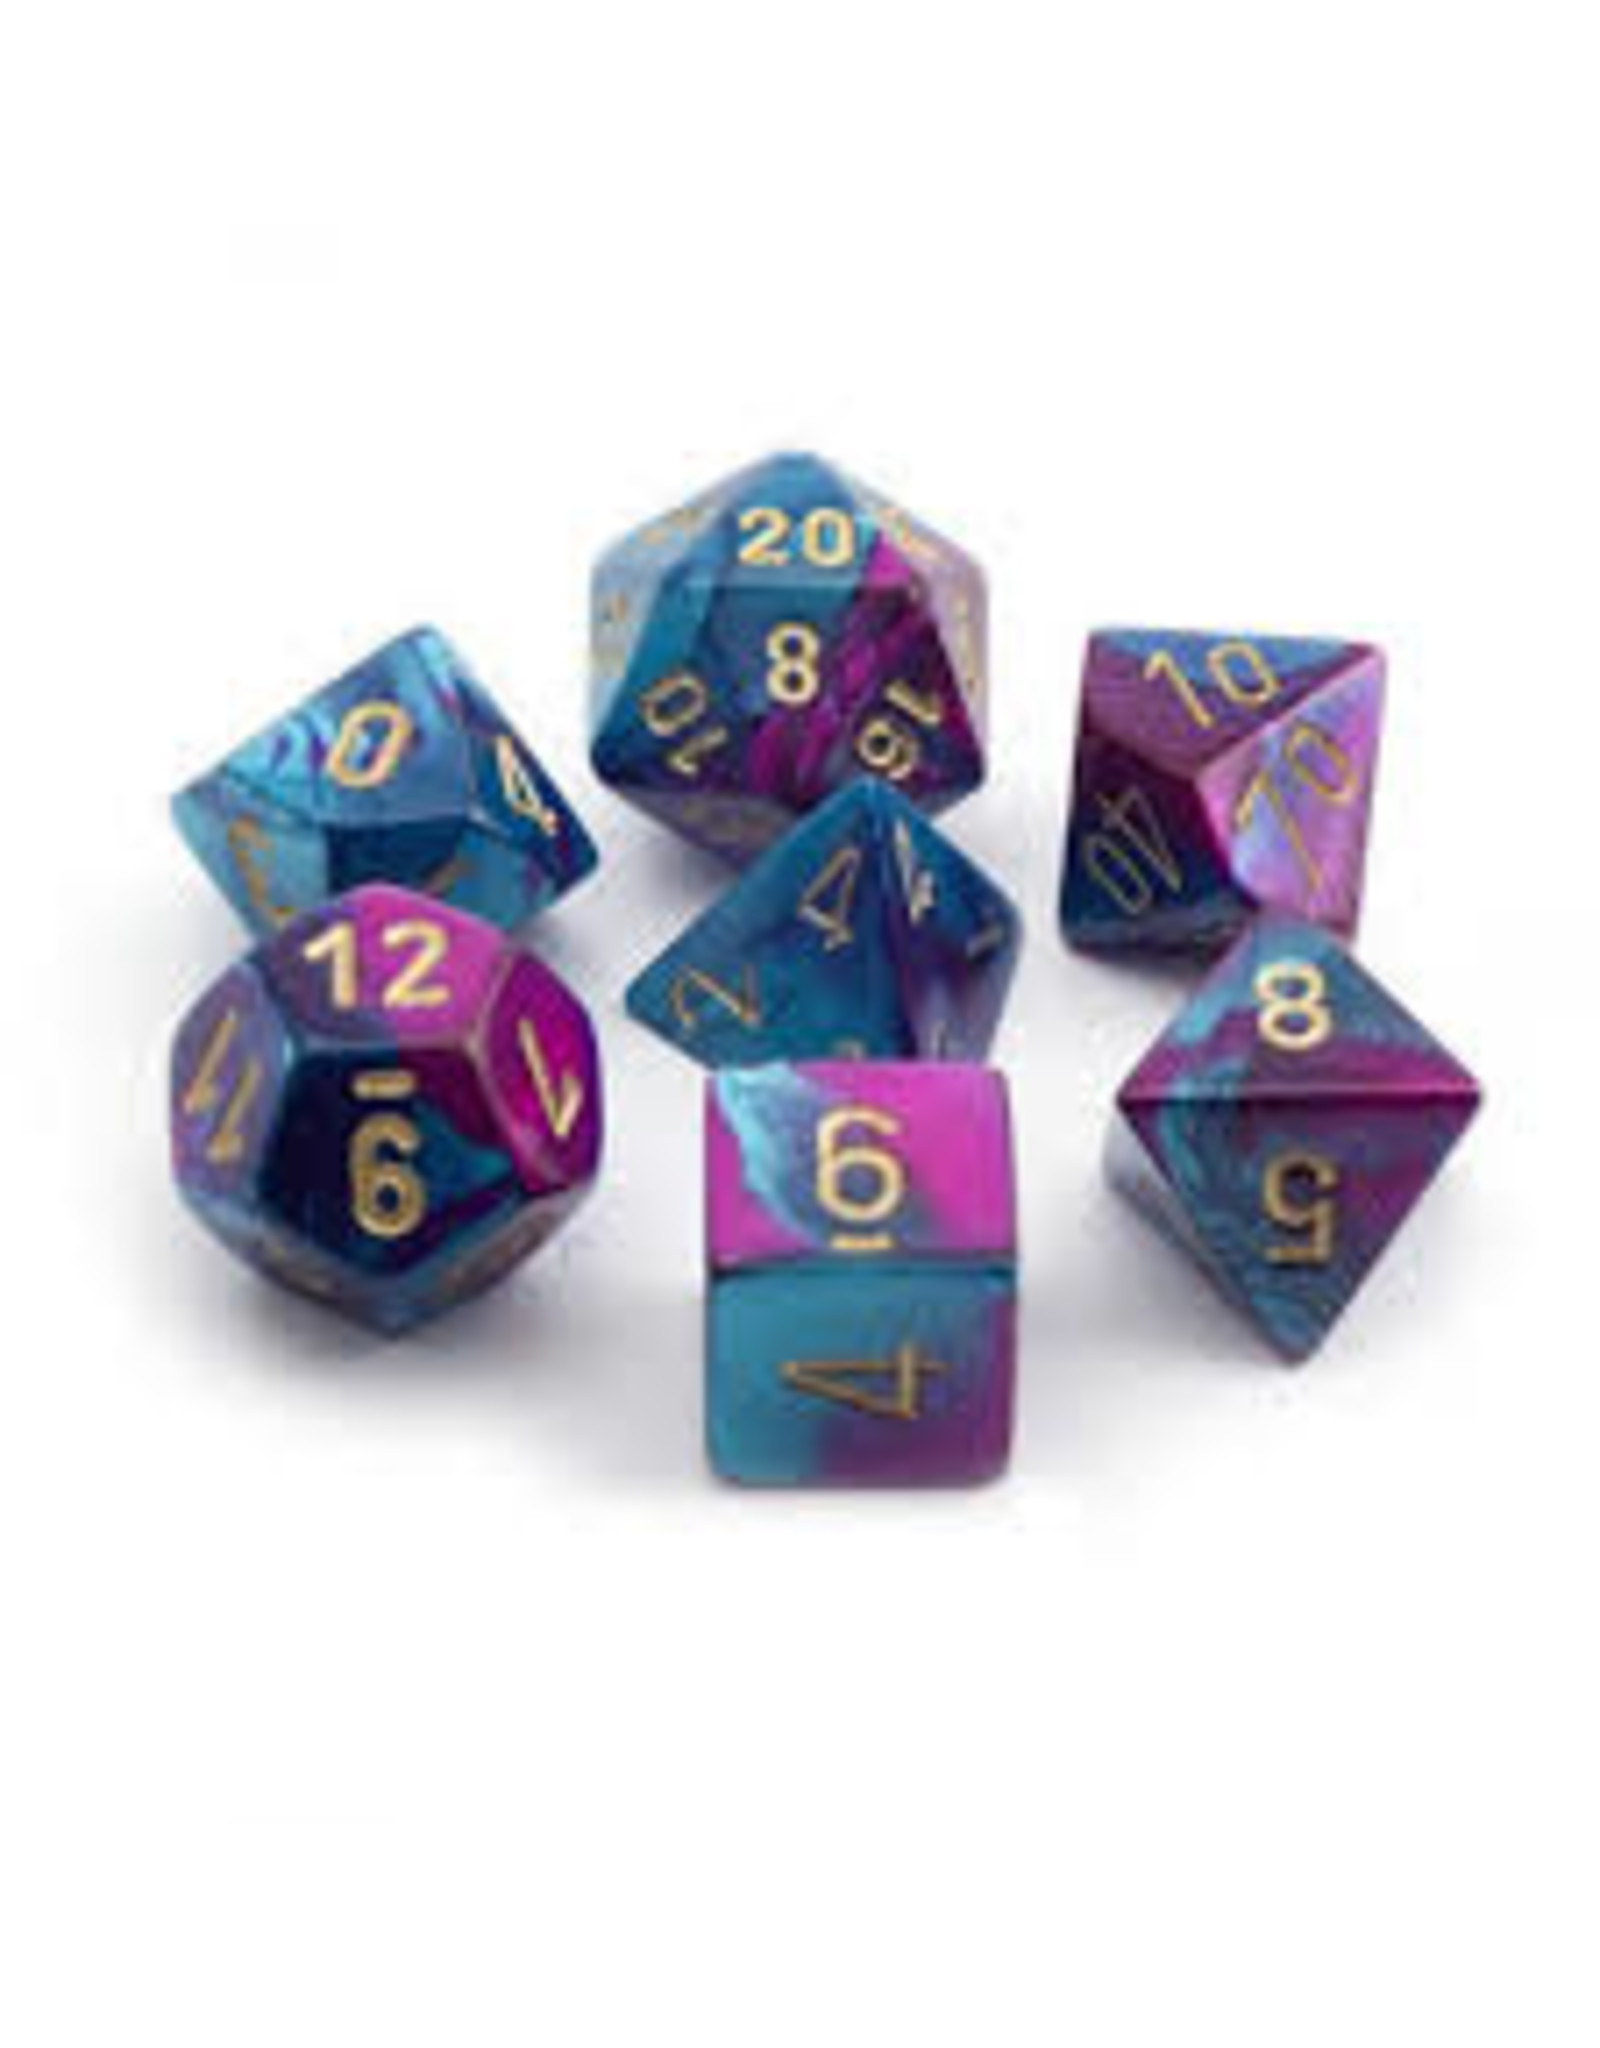 Chessex 7-Set Polyhedral Gemini 5 Purple - Teal with Gold